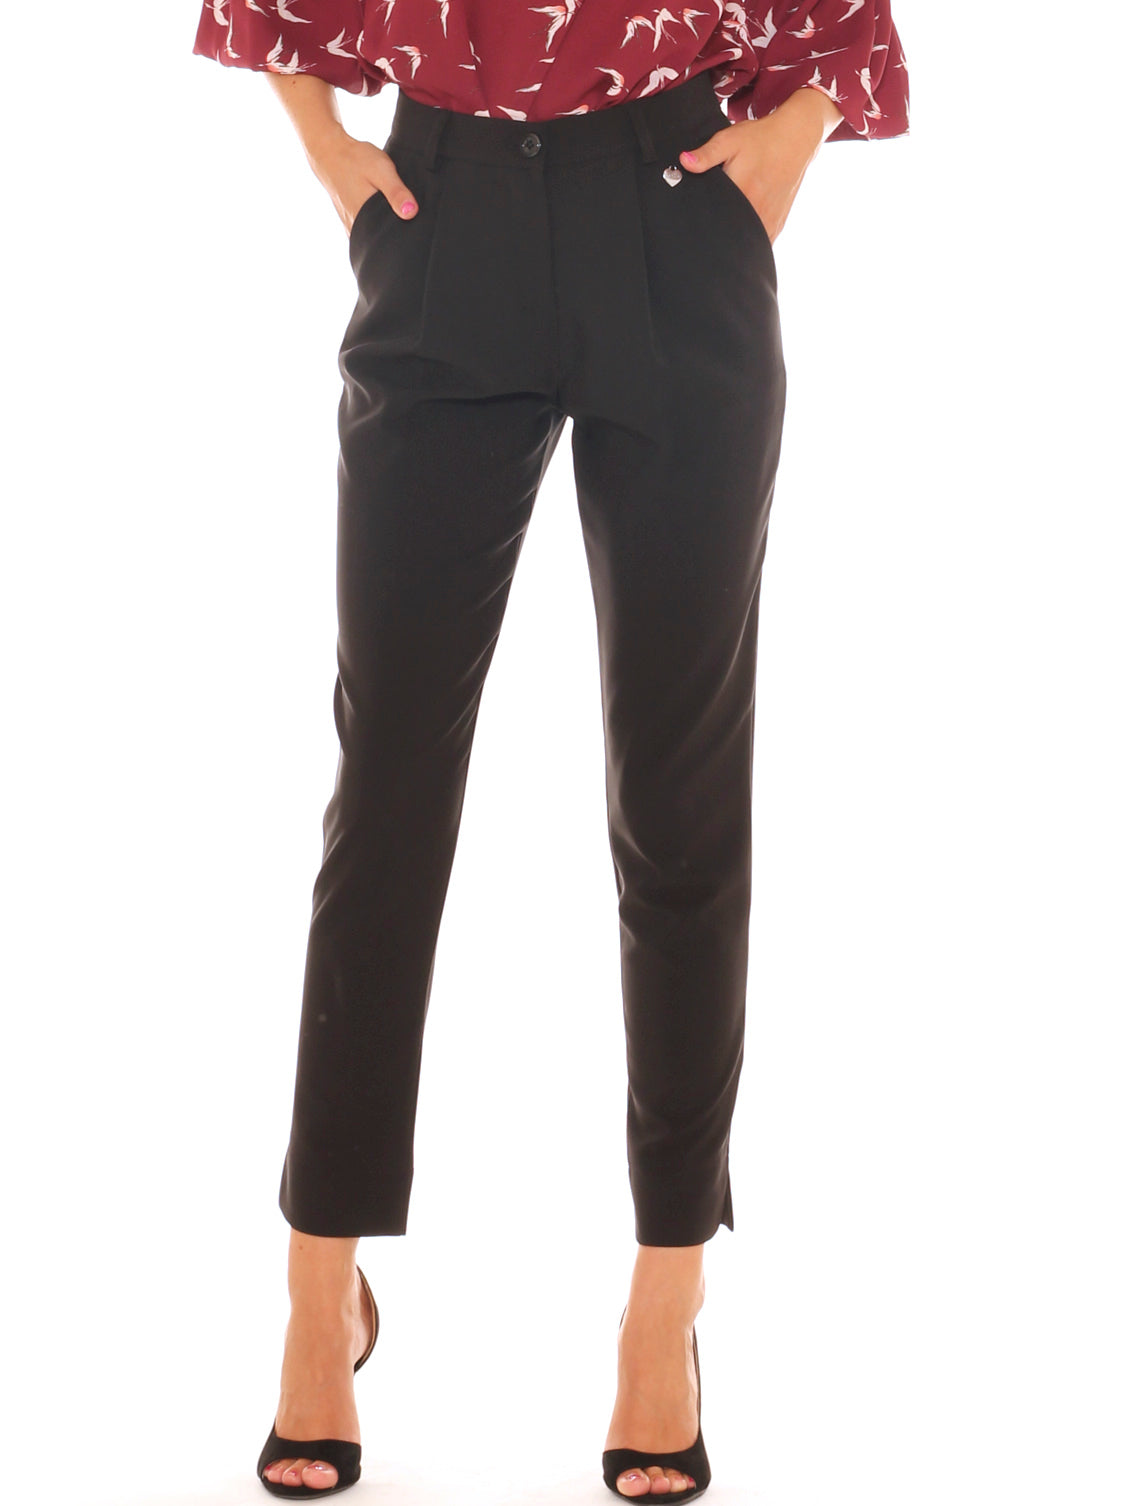 Pantalone chino donna in tessuto stretch con pinces - Luanaromizi.com